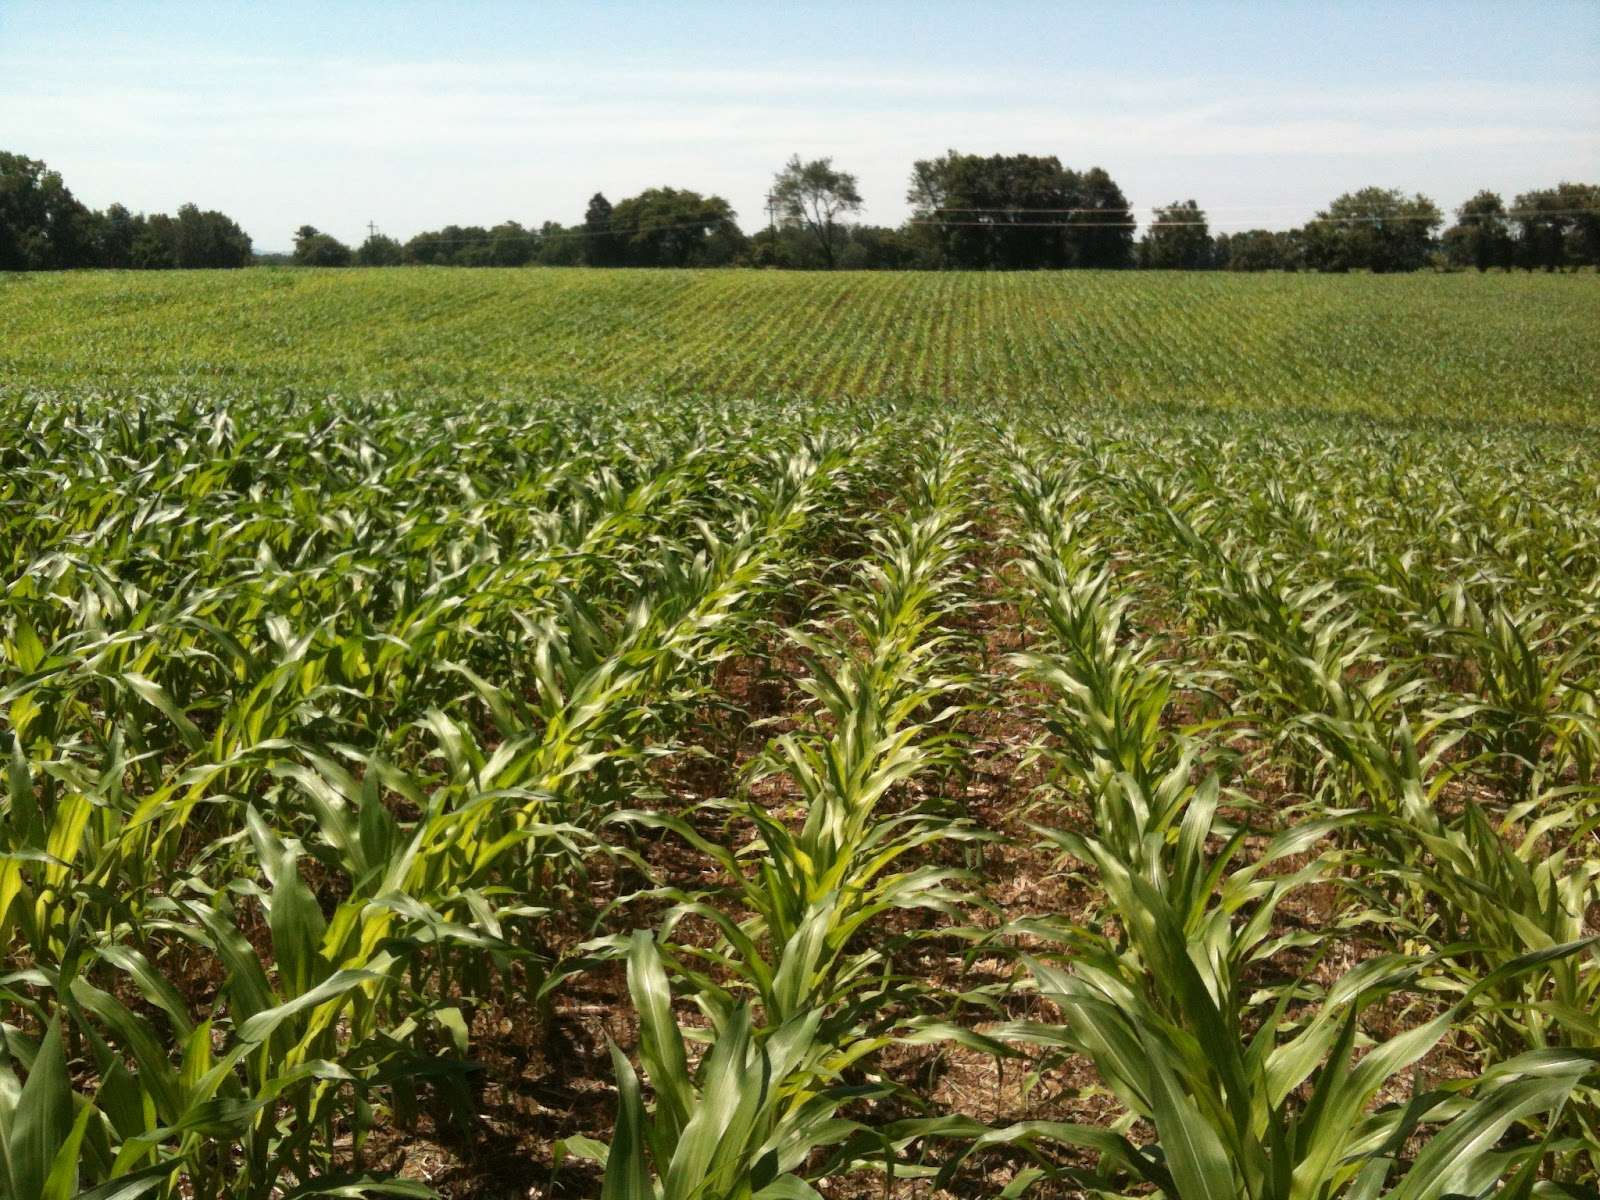 Grain Crops Update: More Corn and Soybean Challenges in Fields